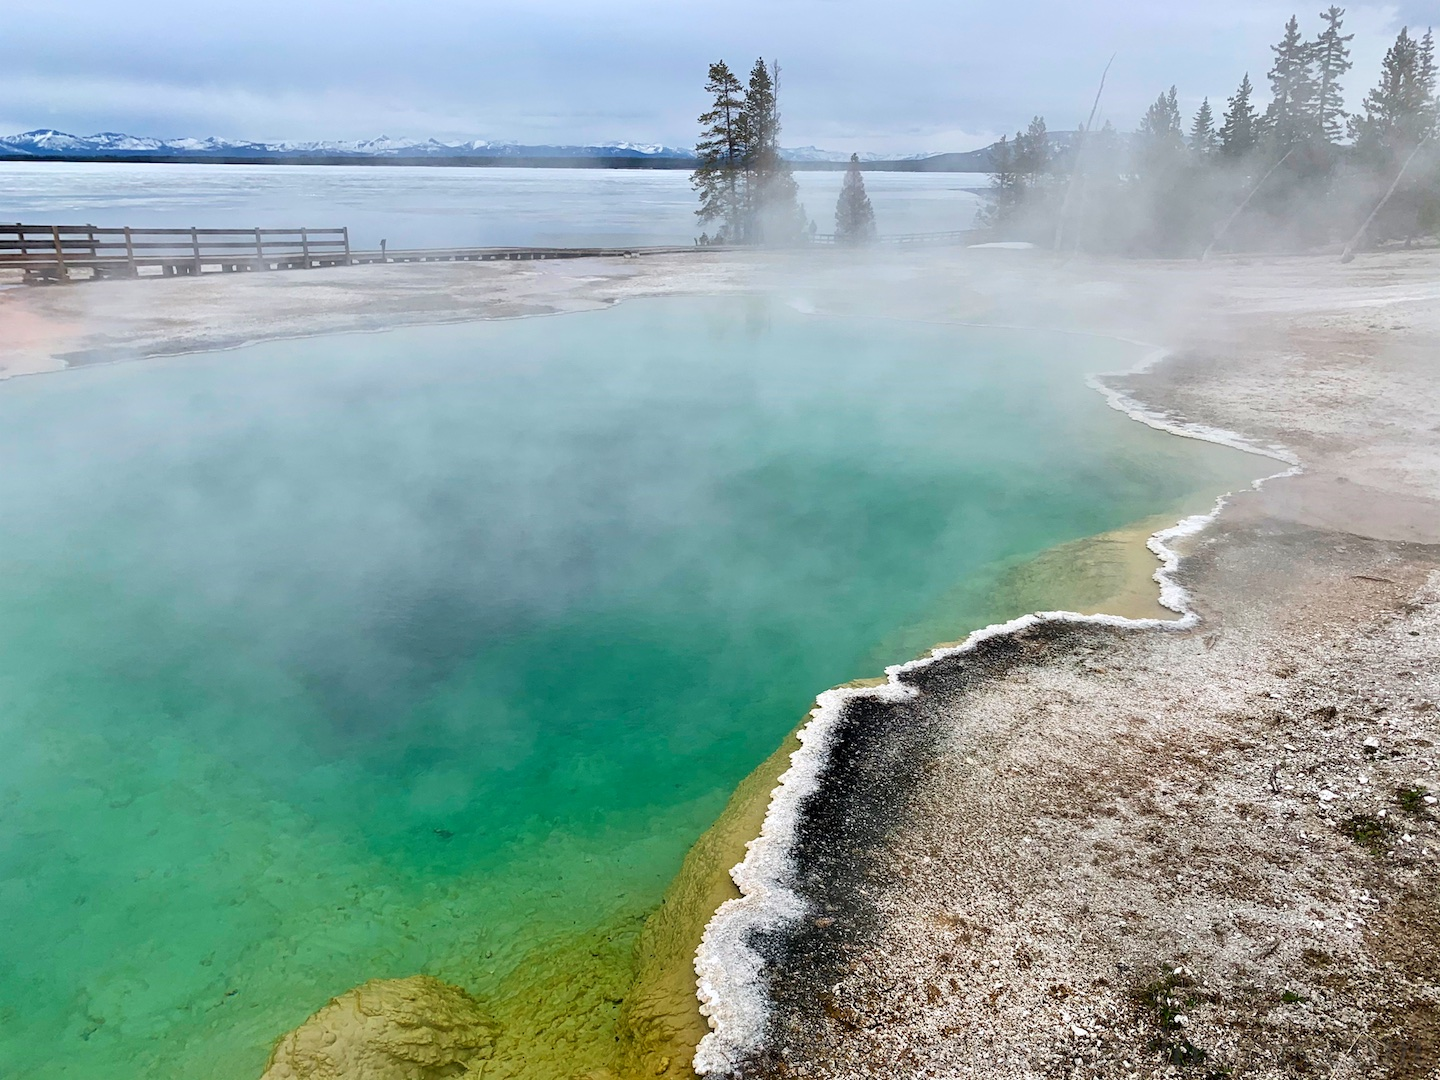 Geyser at West Thumb thermal area, by Yellowstone National Park, USA